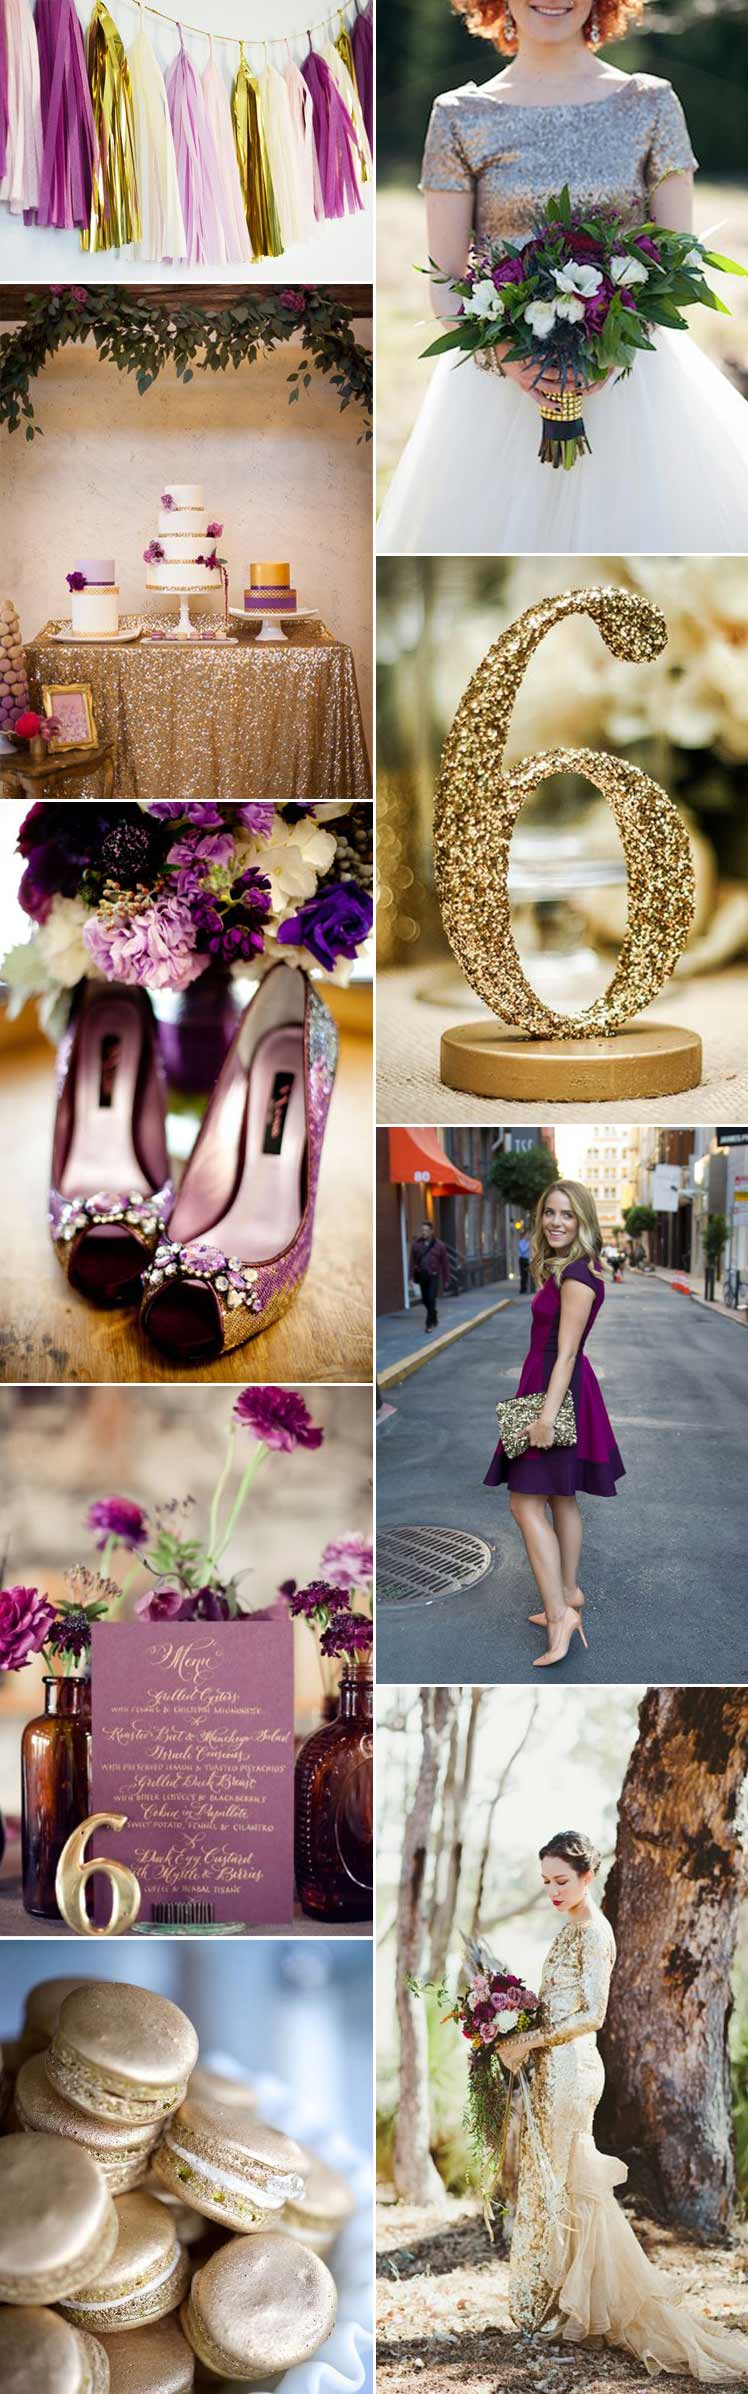 gorgeous wedding ideas incorporating plum and gold